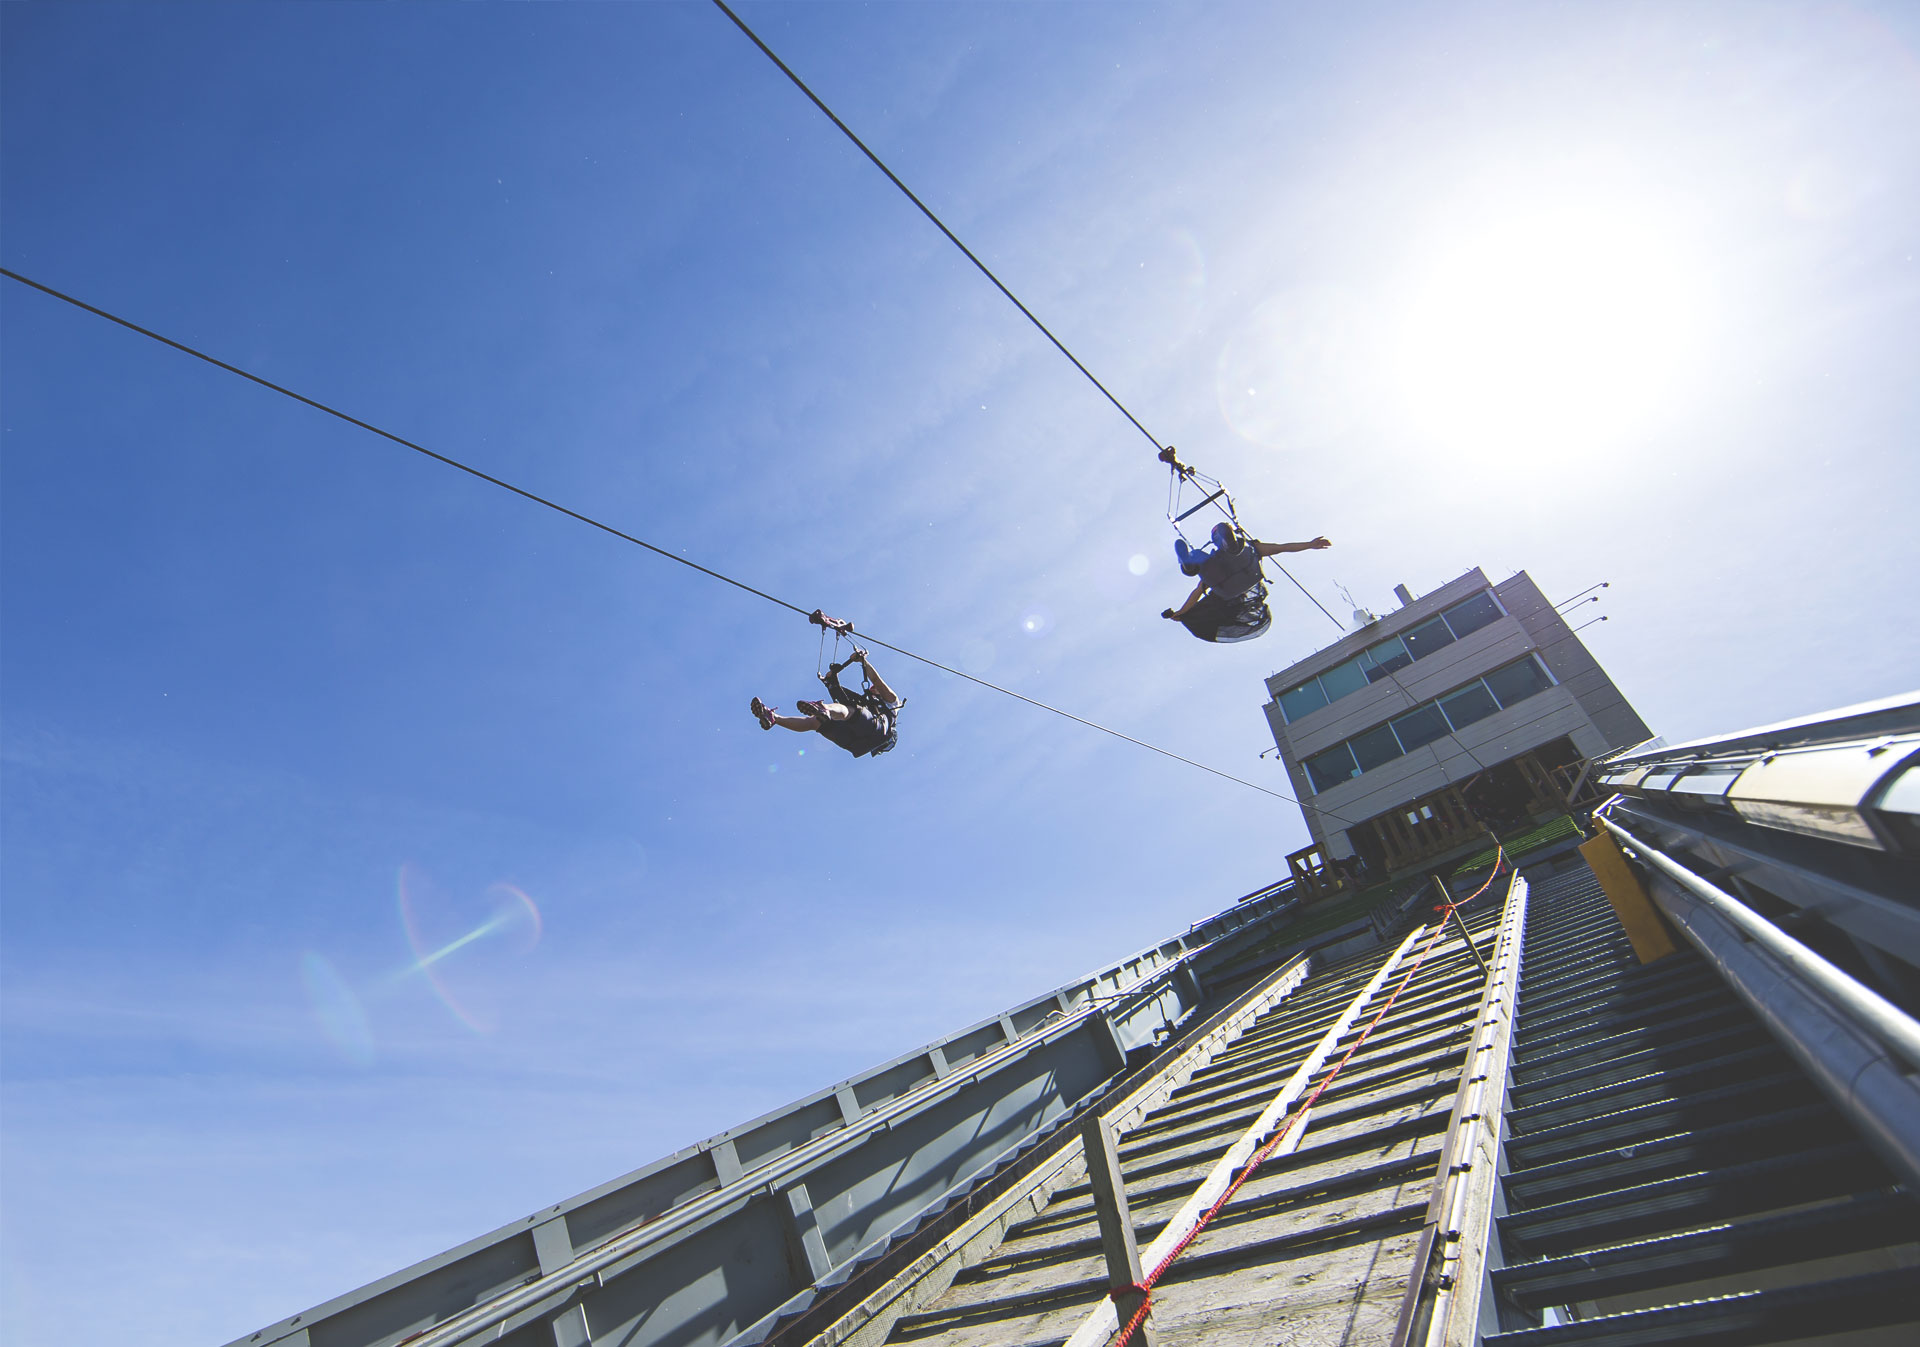 Go for a ride on the Monster Zipline at WinSport.